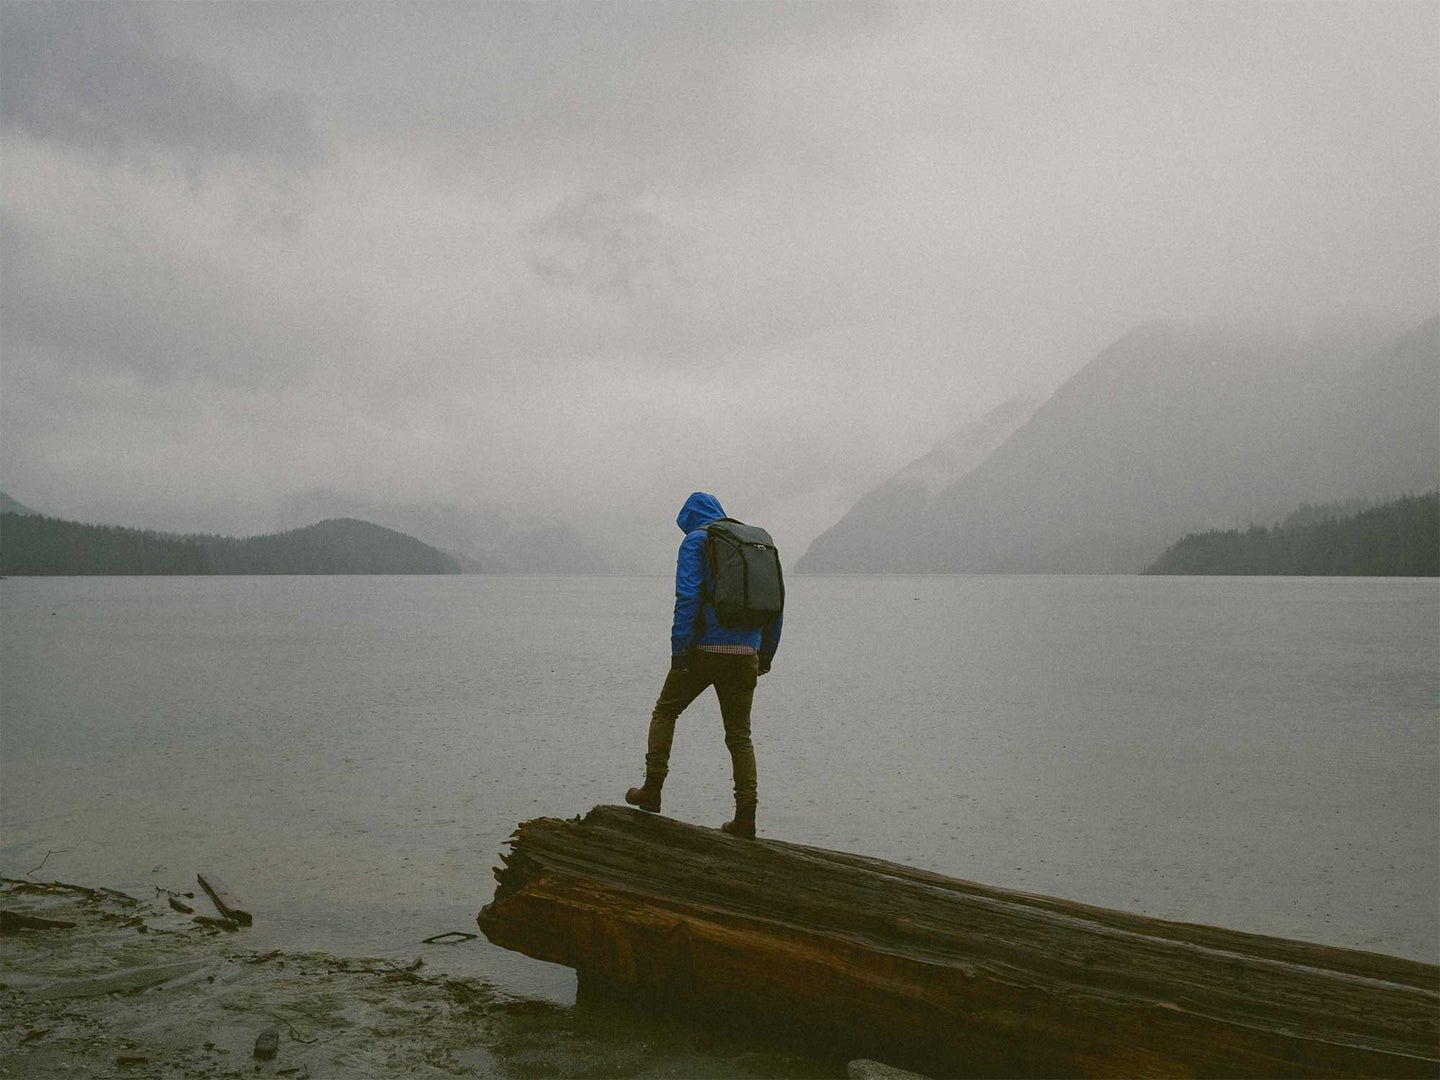 Three Things To Consider When Buying A Waterproof Jacket